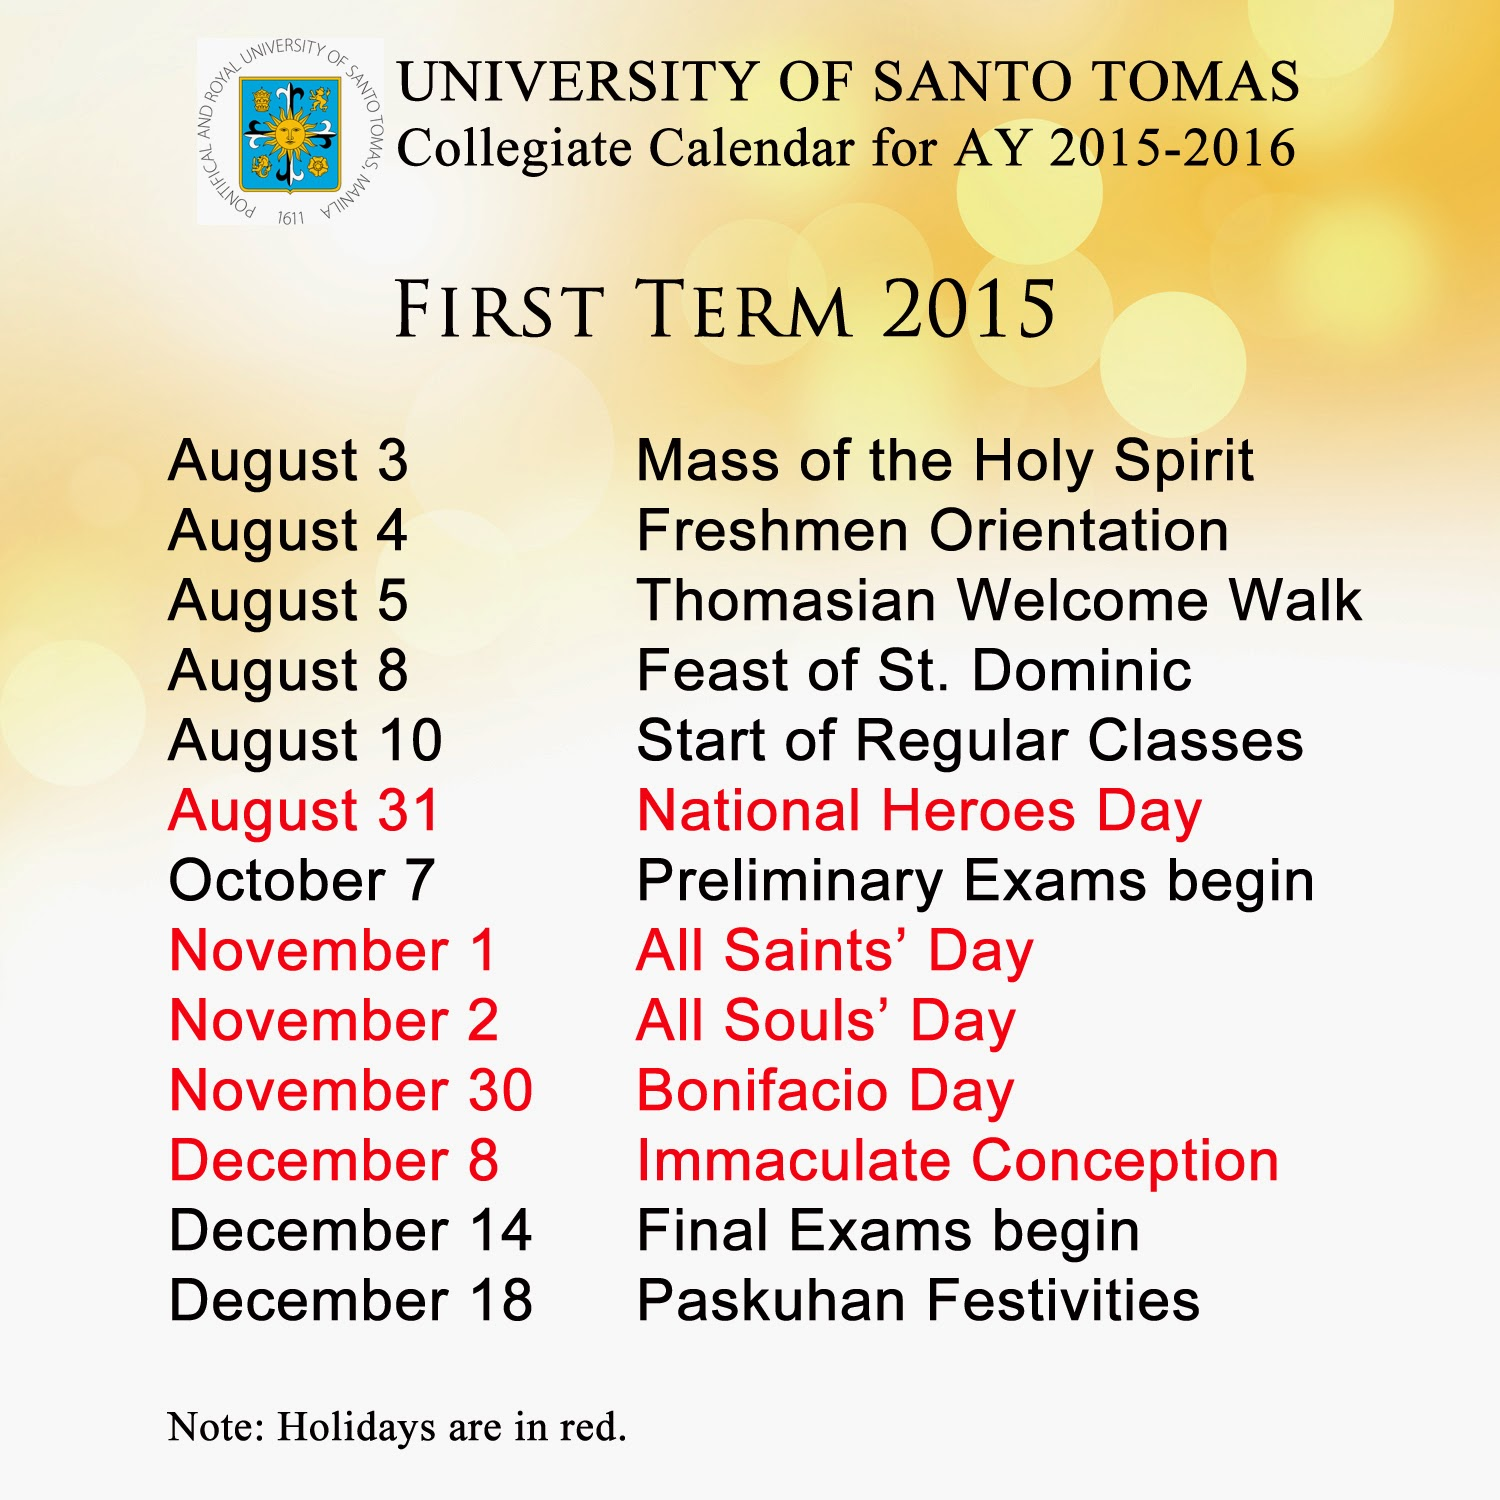 Collegiate Calendar for AY 2015-2016